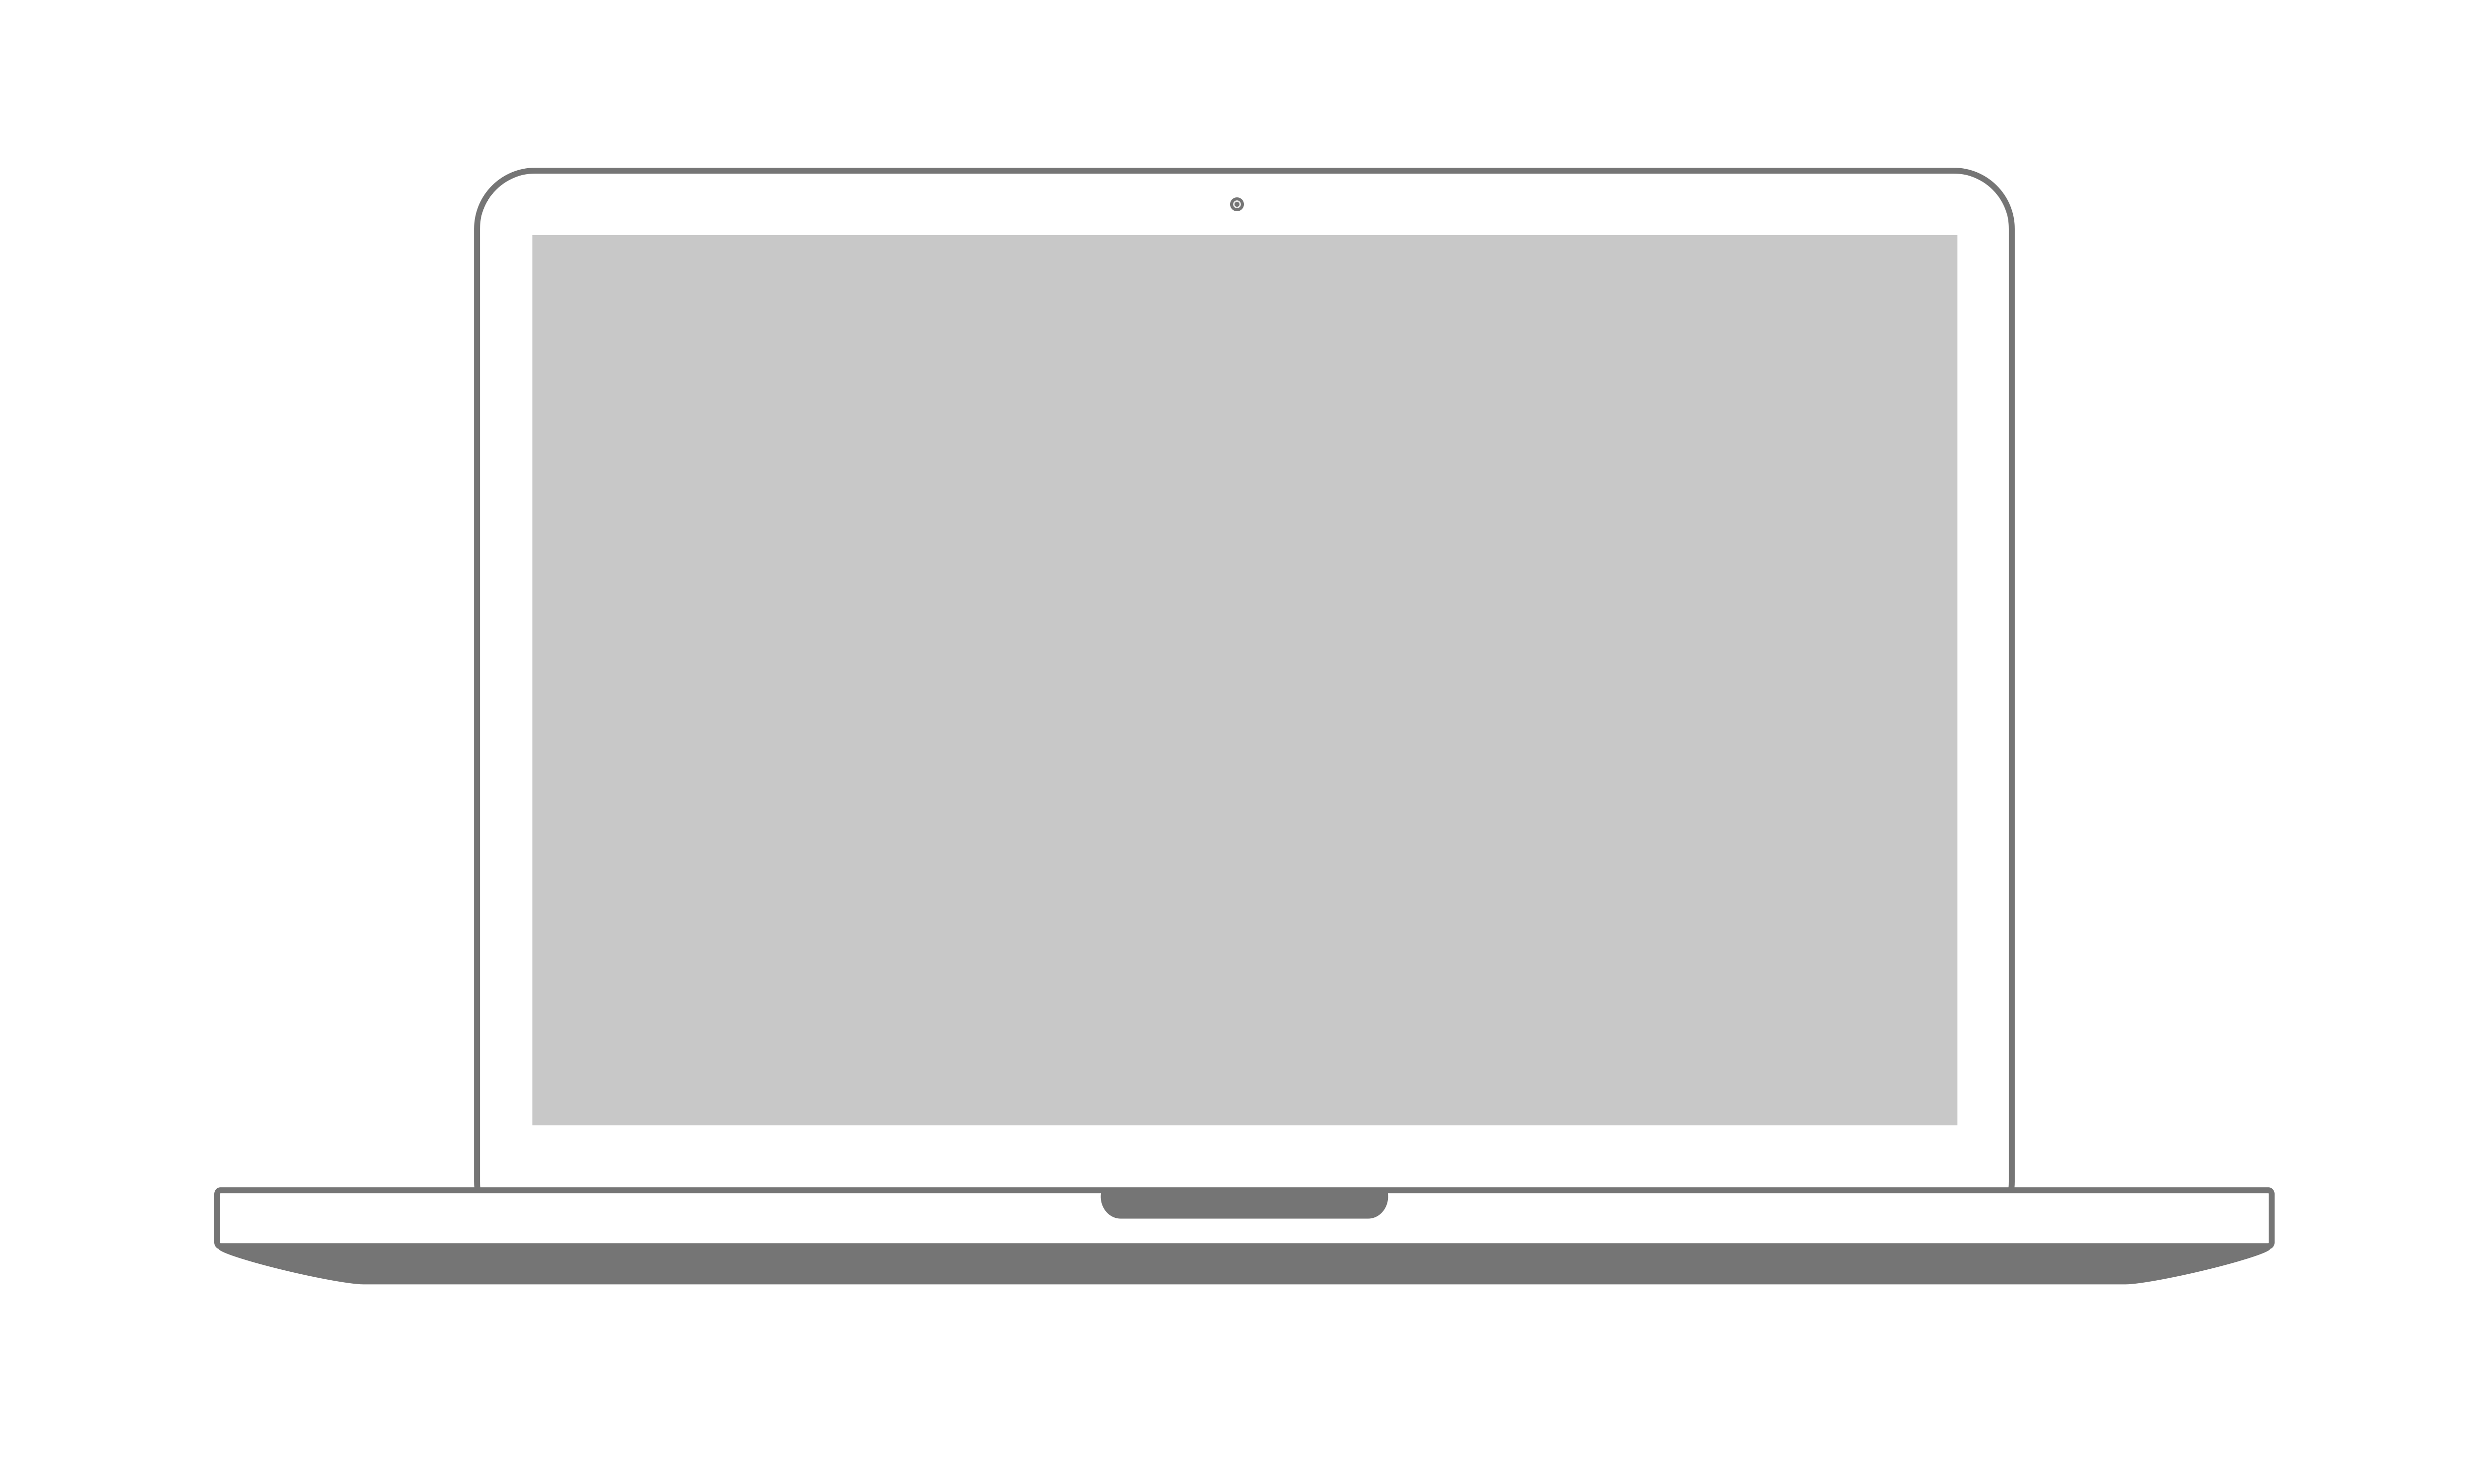 Youtube clipart minimalist. Apple products minimal wireframe